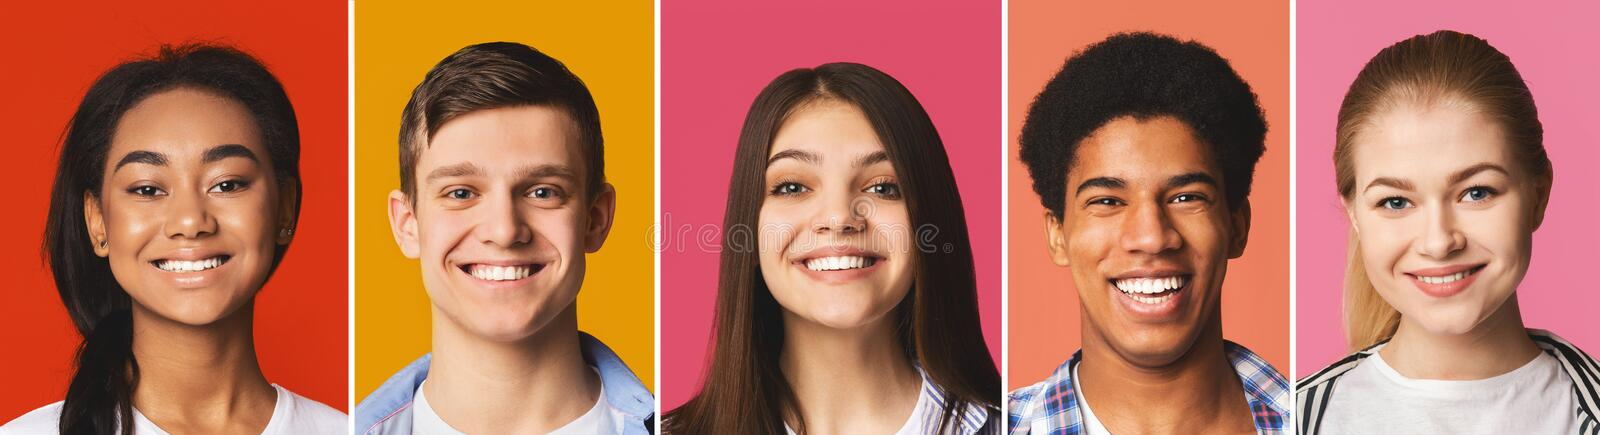 Portrait`s collage. Diverse teens smiling at colorful backgrounds stock photos